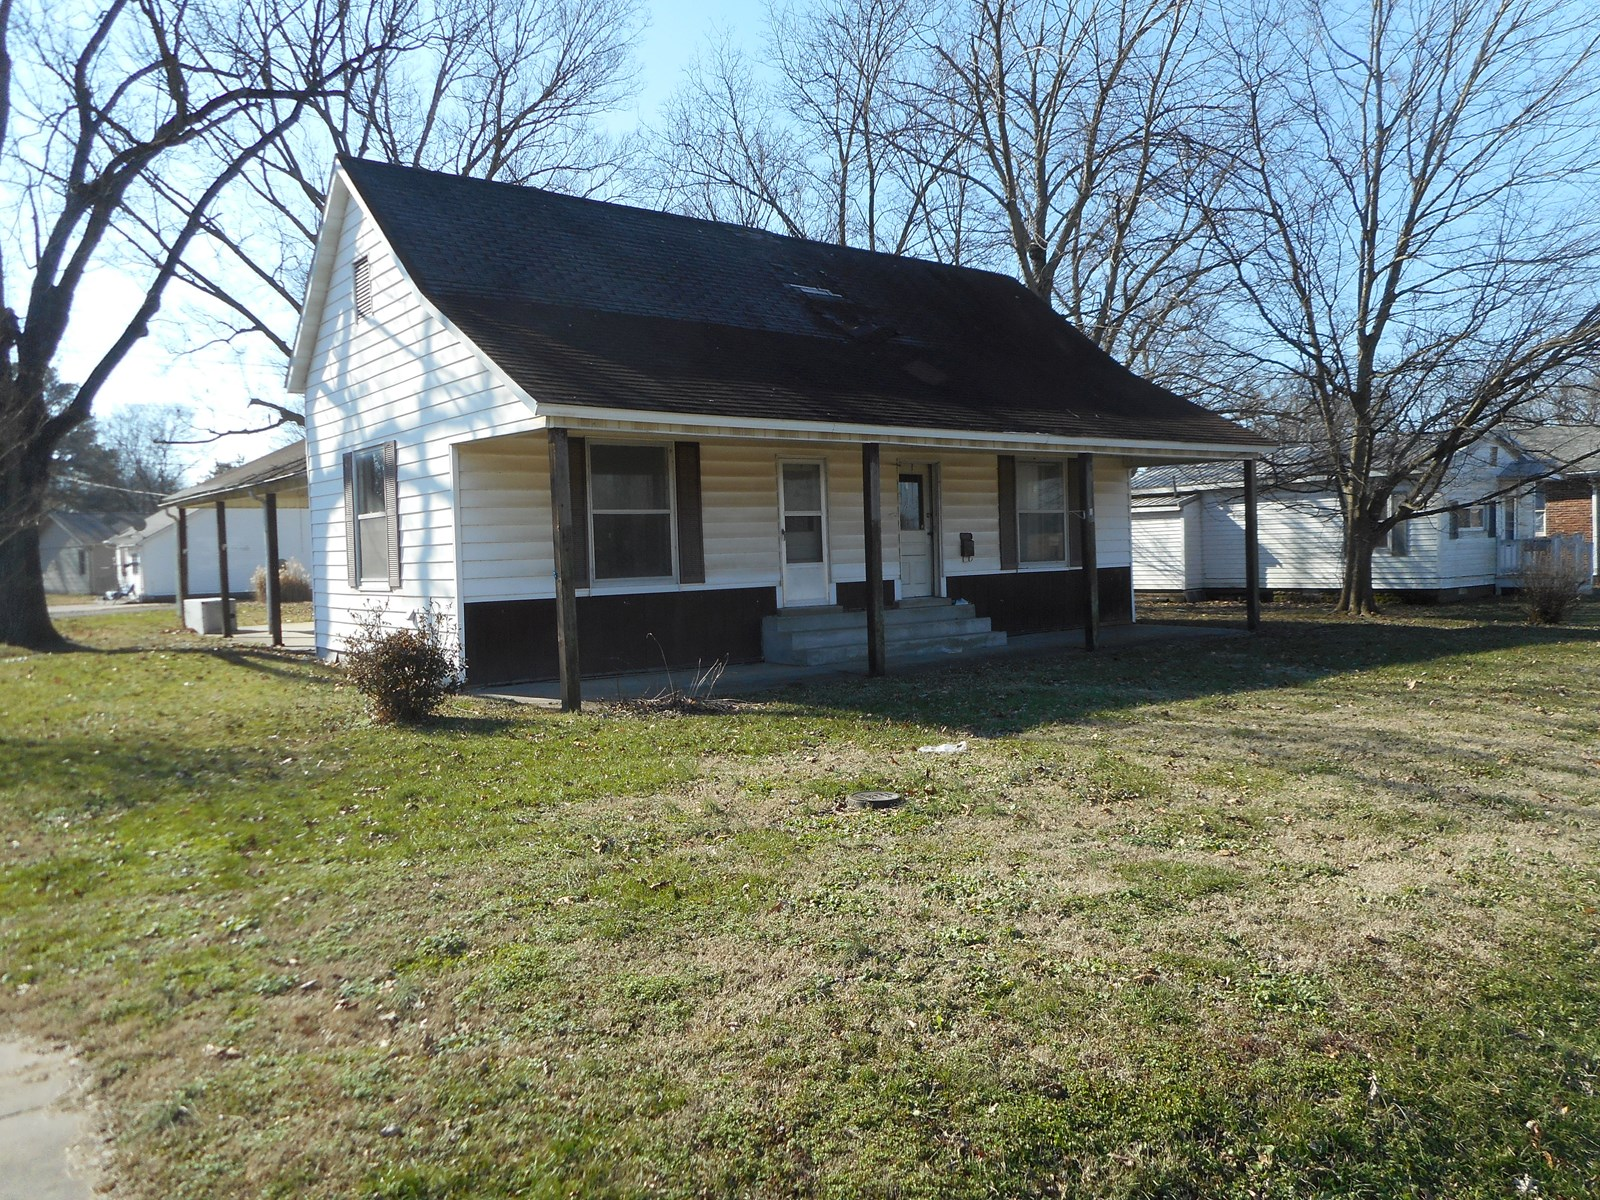 For Sale Duplex Investment Property in Chaffee, Missouri